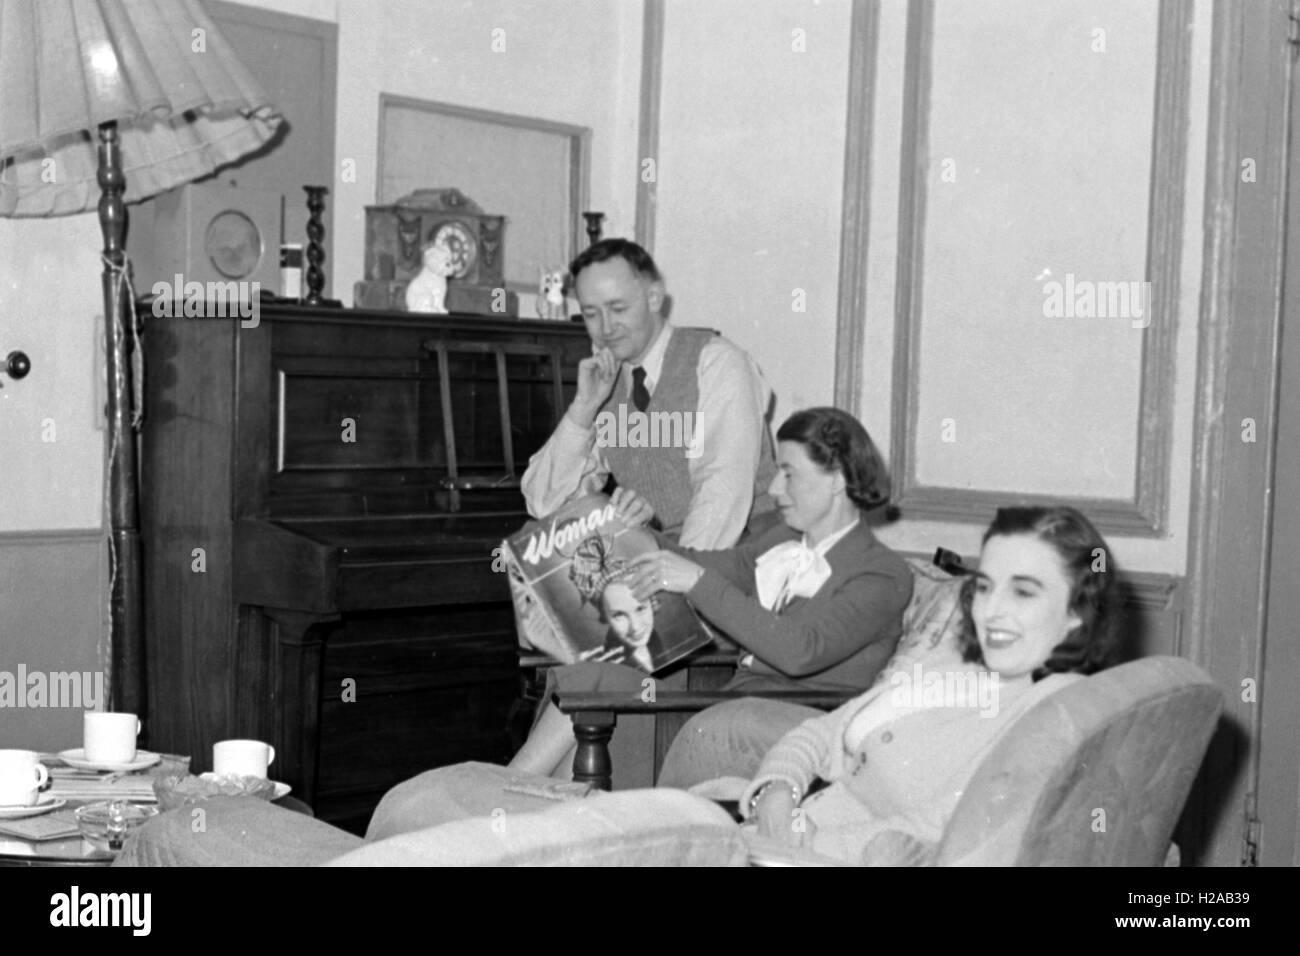 Typical family living room c1950. Mother is reading 'Woman Magazine'. Photo by Tony Henshaw - Stock Image